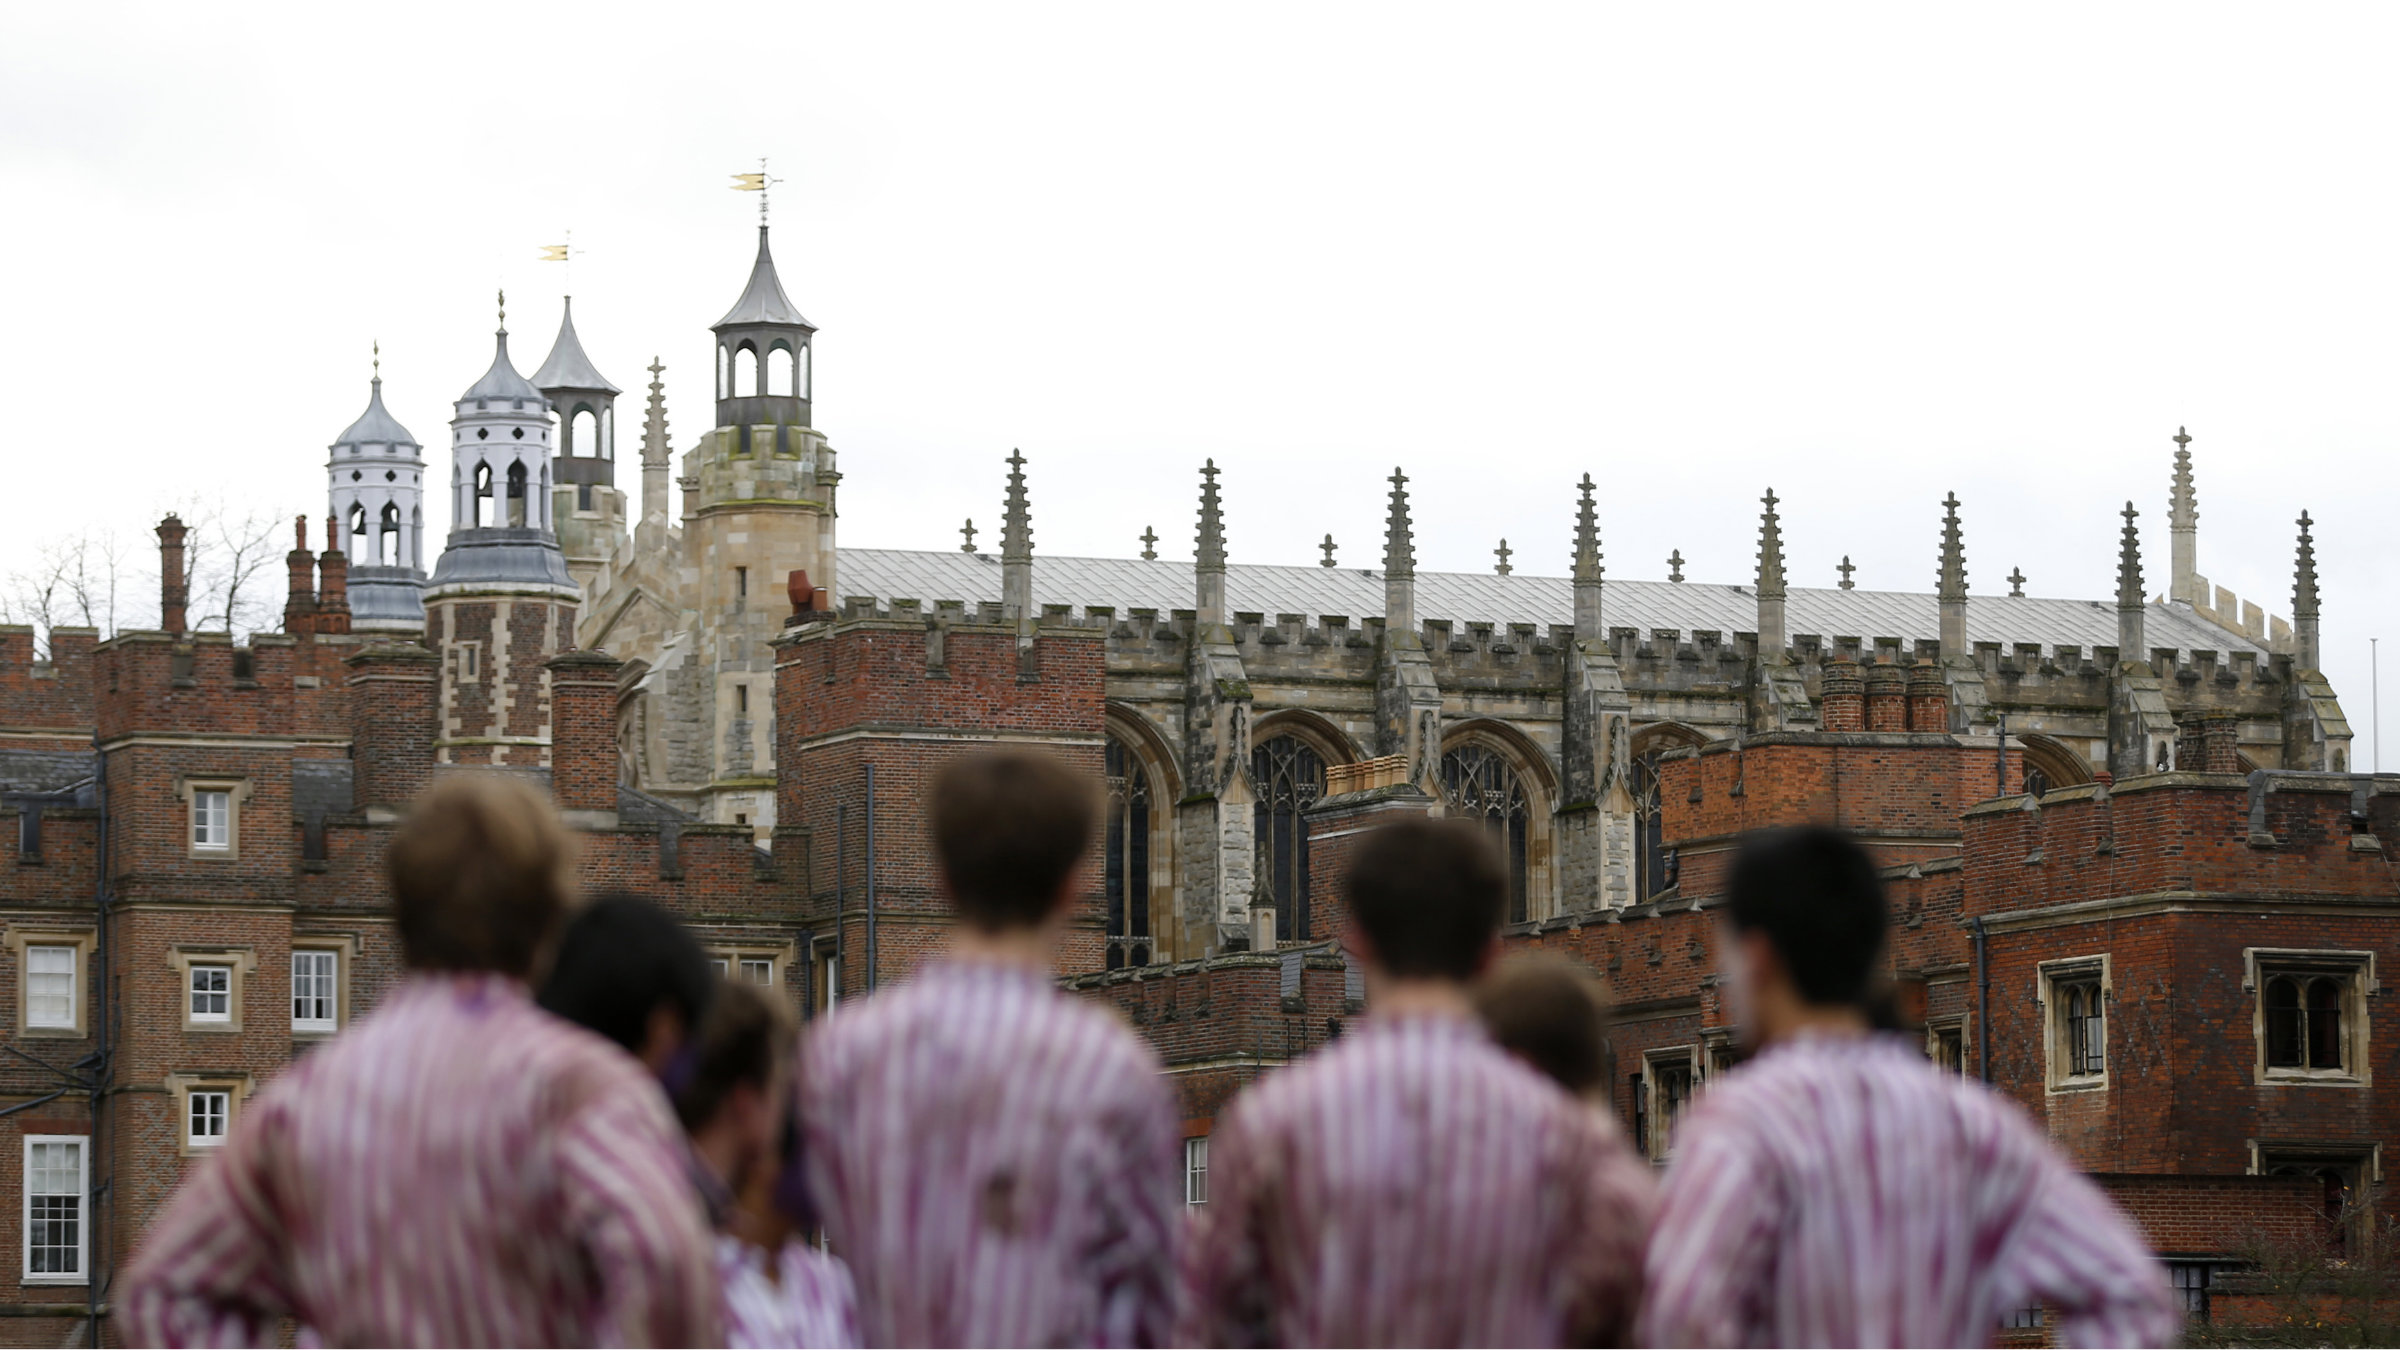 What people think of when they think of Eton.